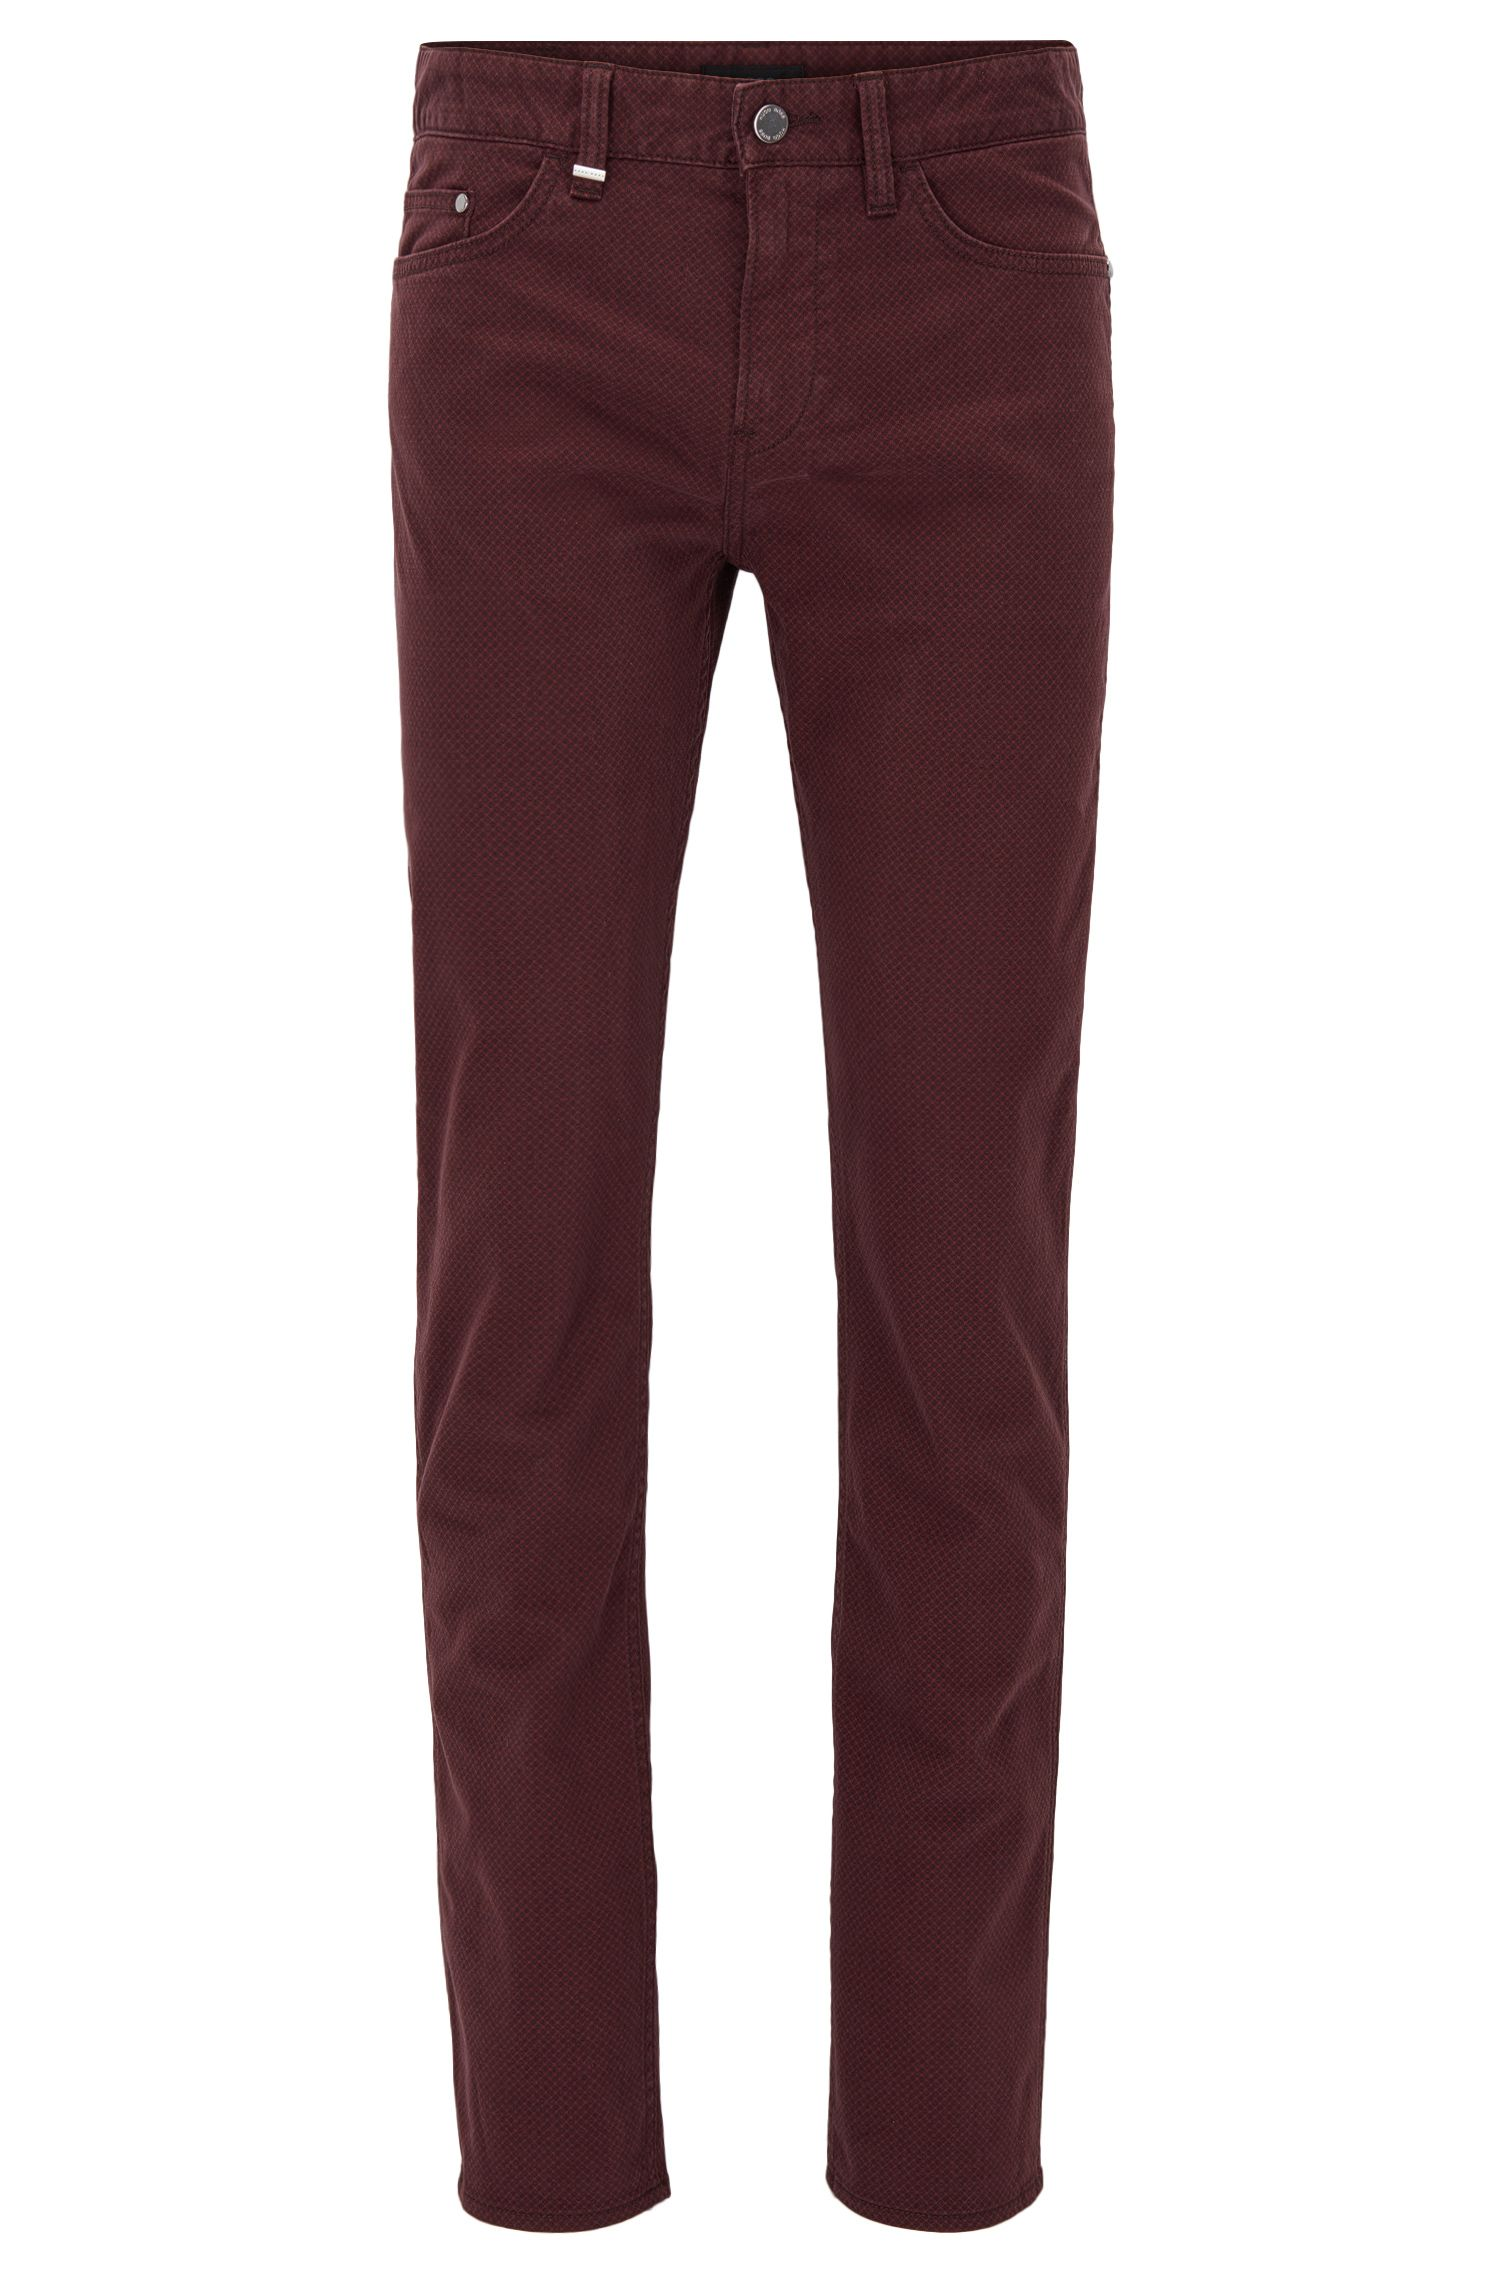 Micro-Print Stretch Cotton Jeans, Slim Fit | Delaware, Red